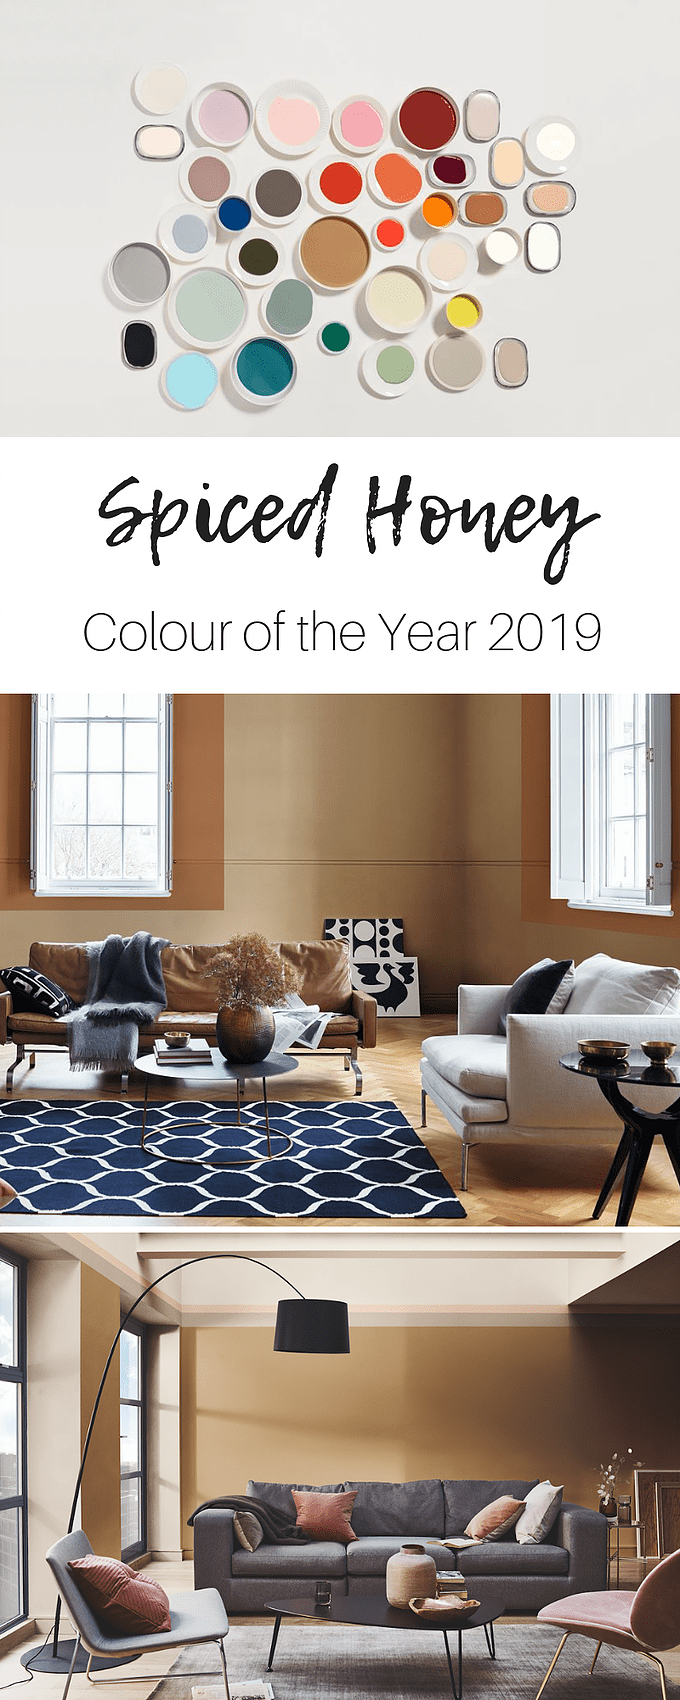 Spiced honey is the dulux colour of the year a beautifully